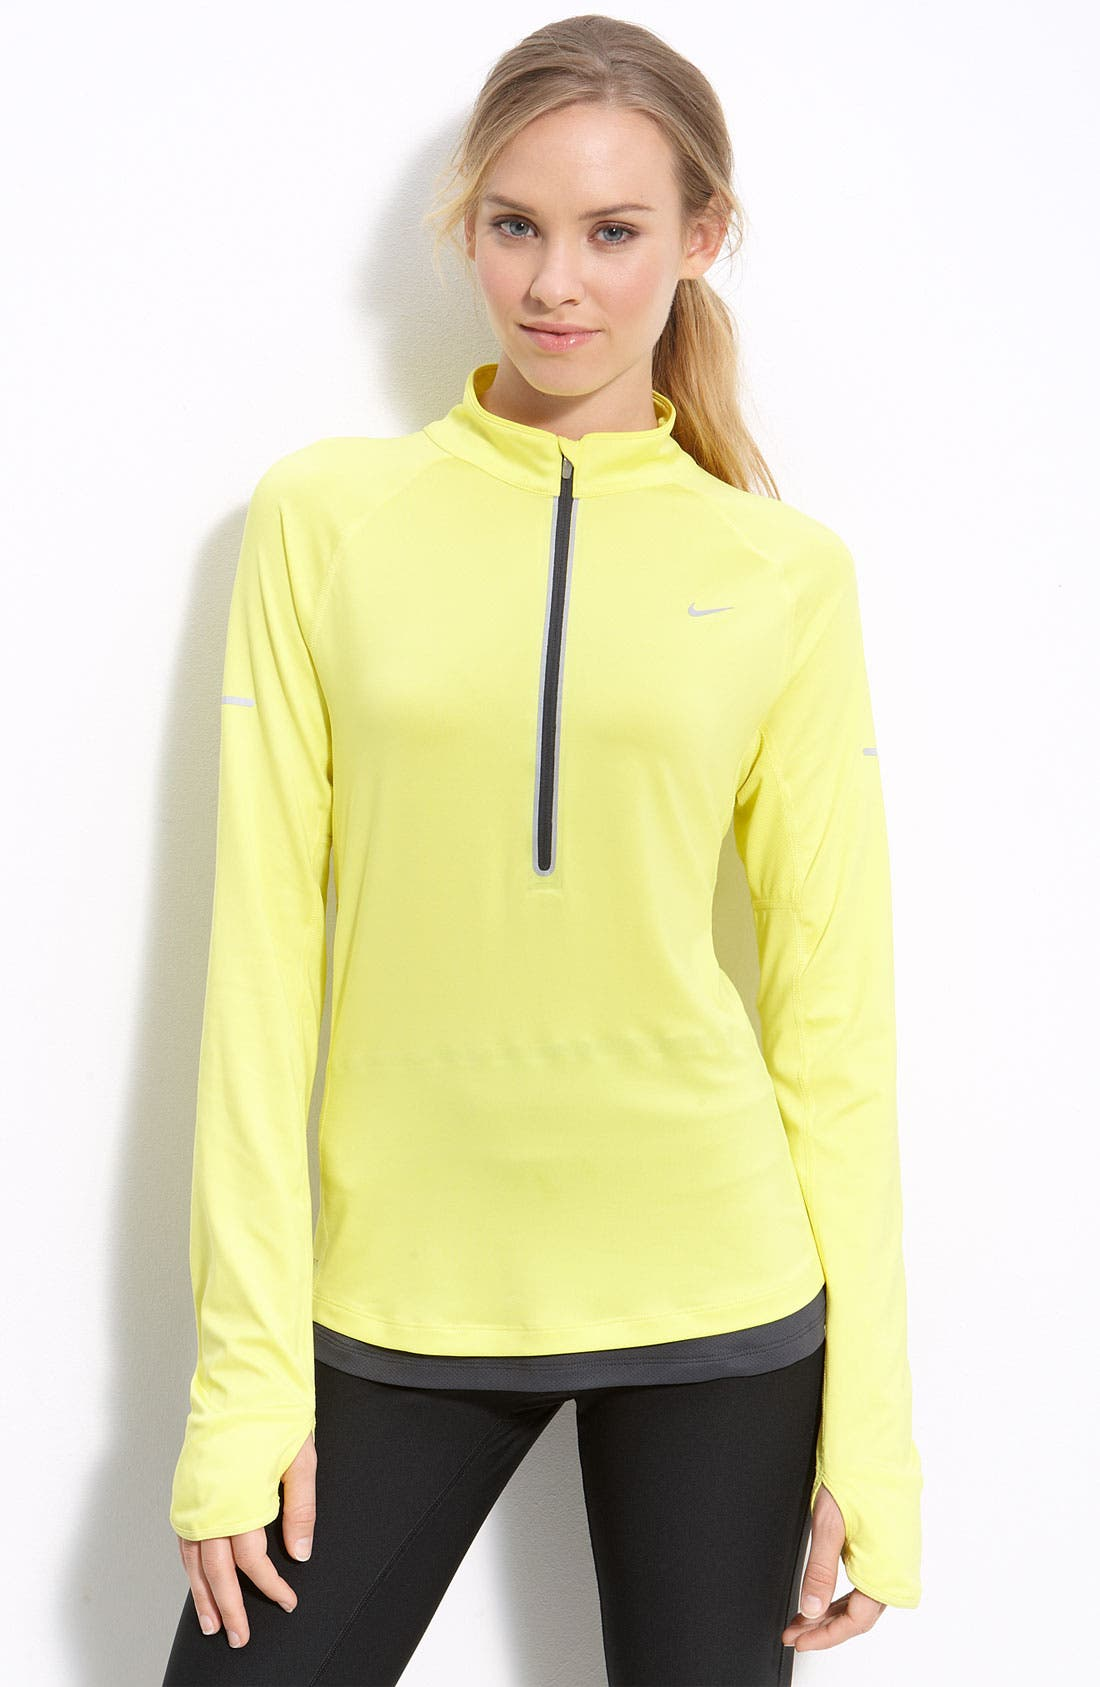 'Denier Differential' Half Zip Running Top,                         Main,                         color, 700